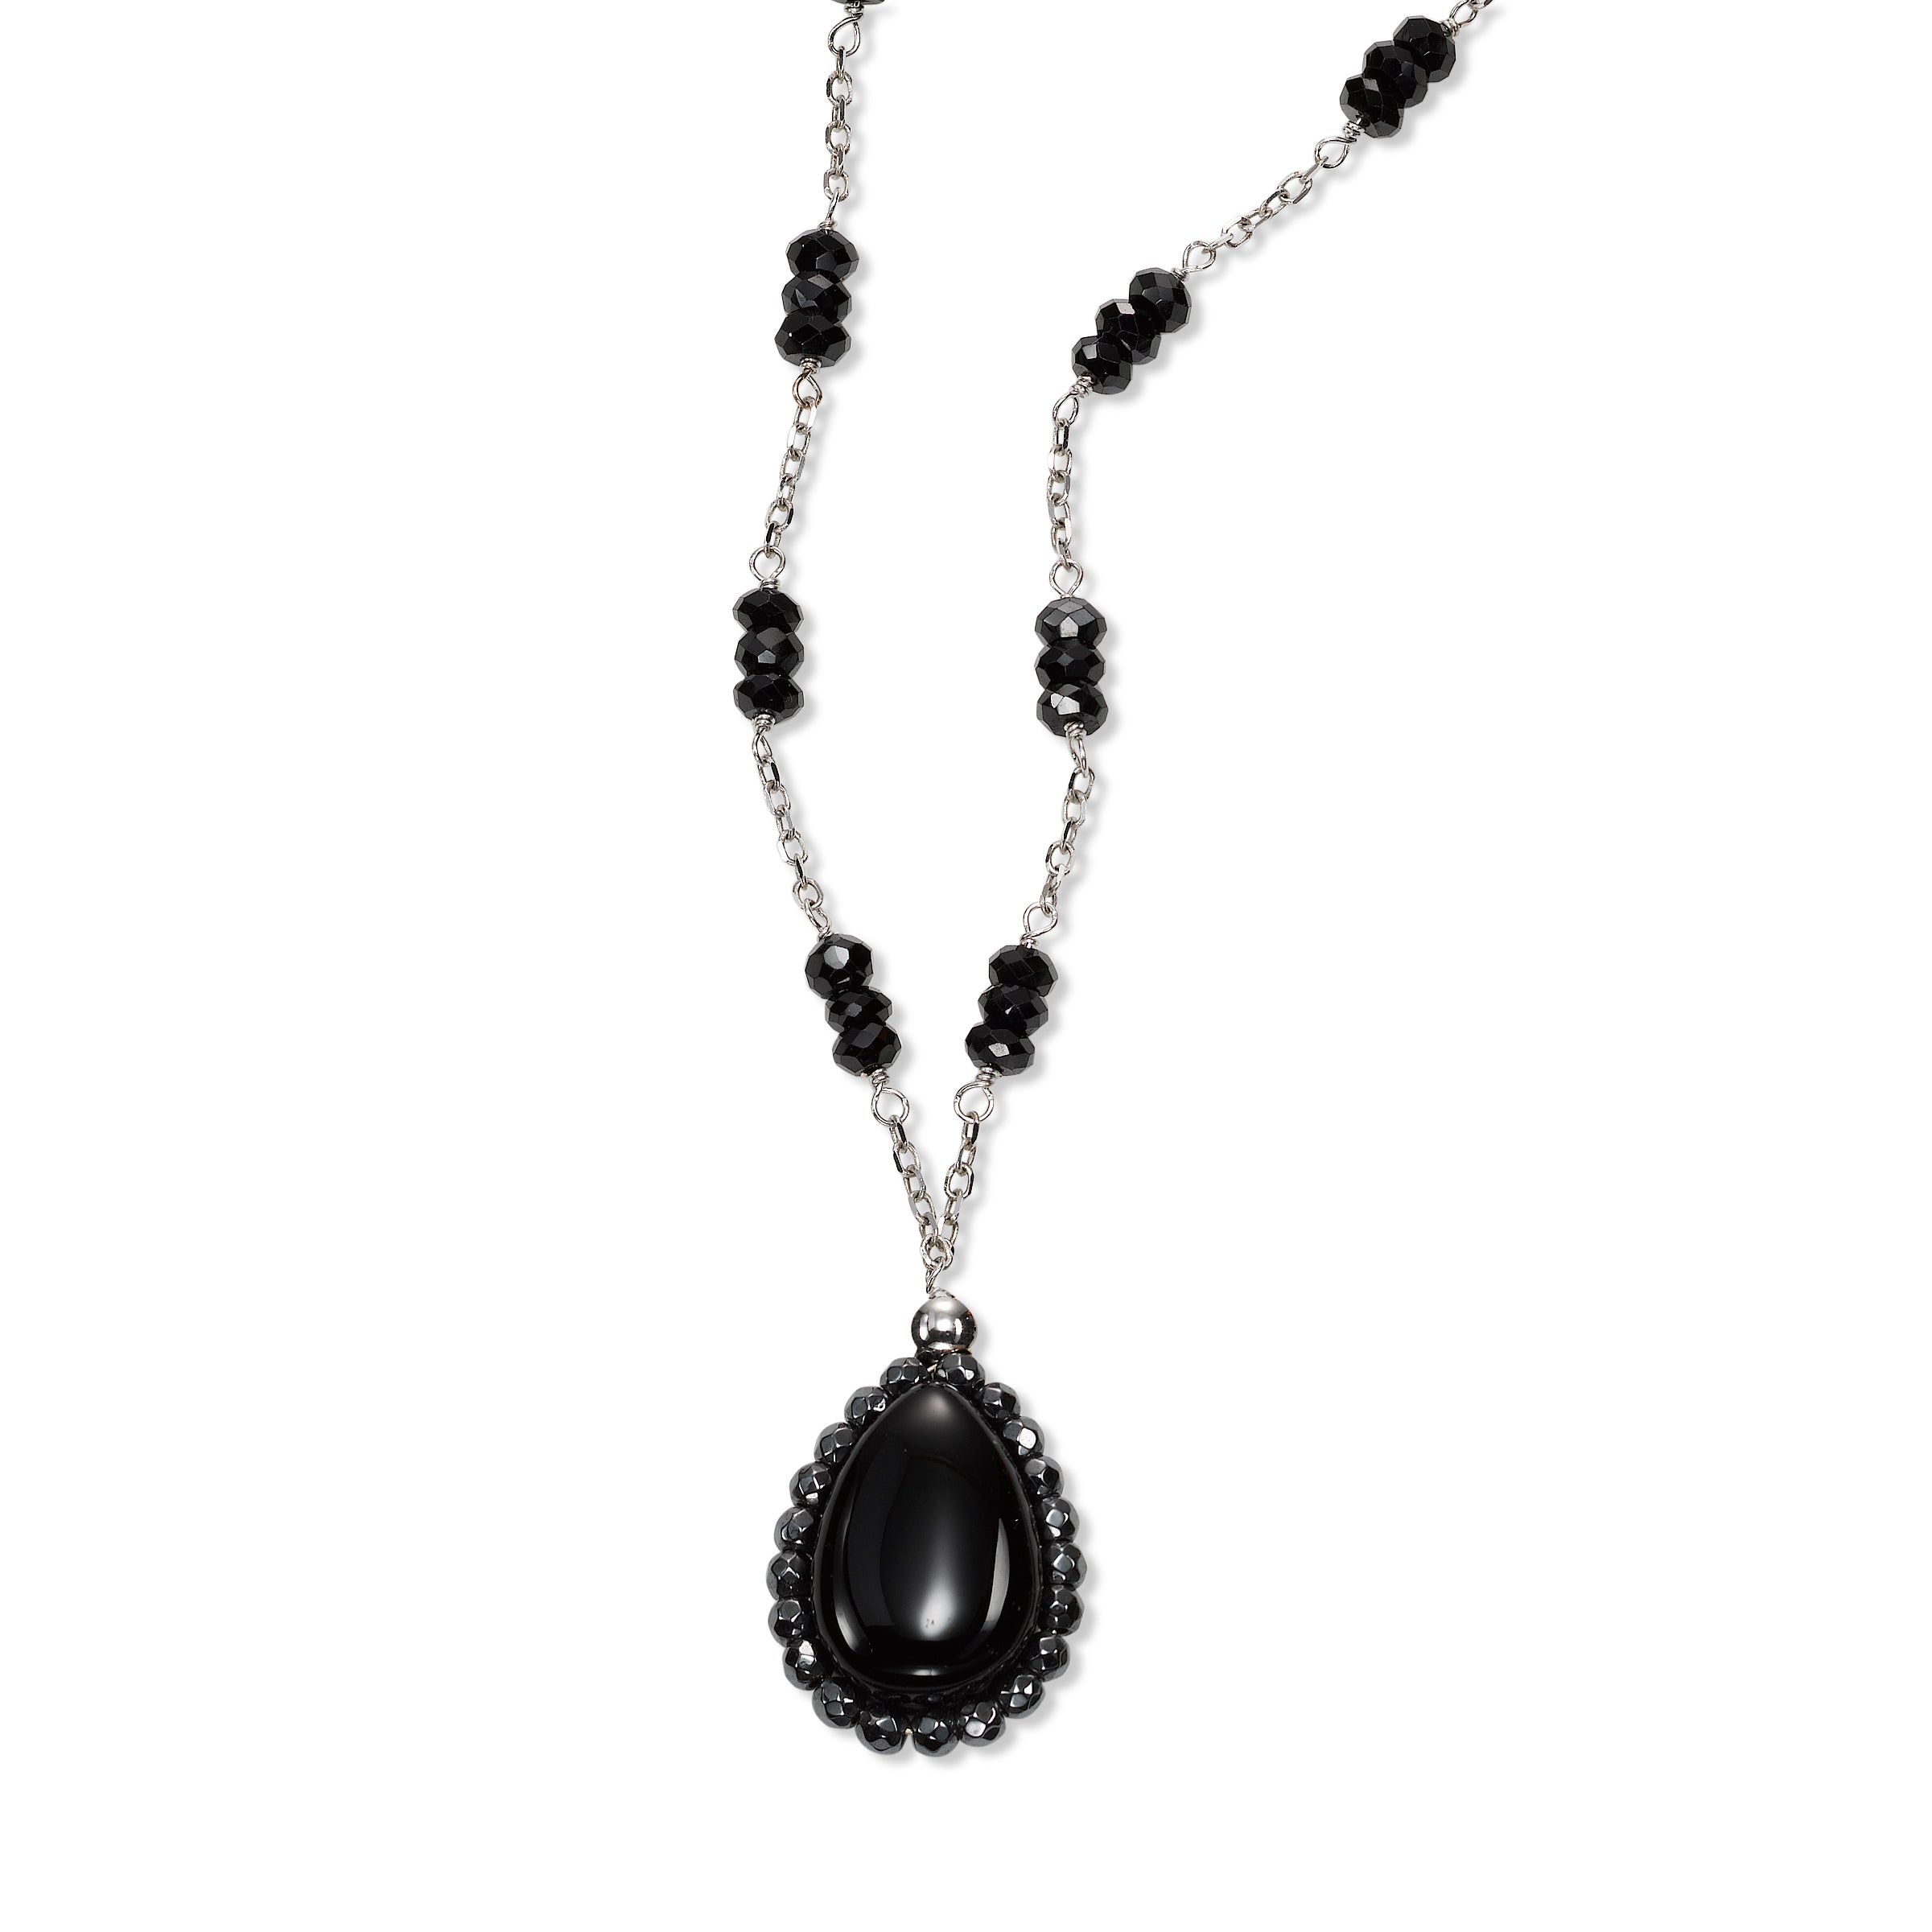 Black Onyx and Hematite Drop Necklace, 14K White Gold